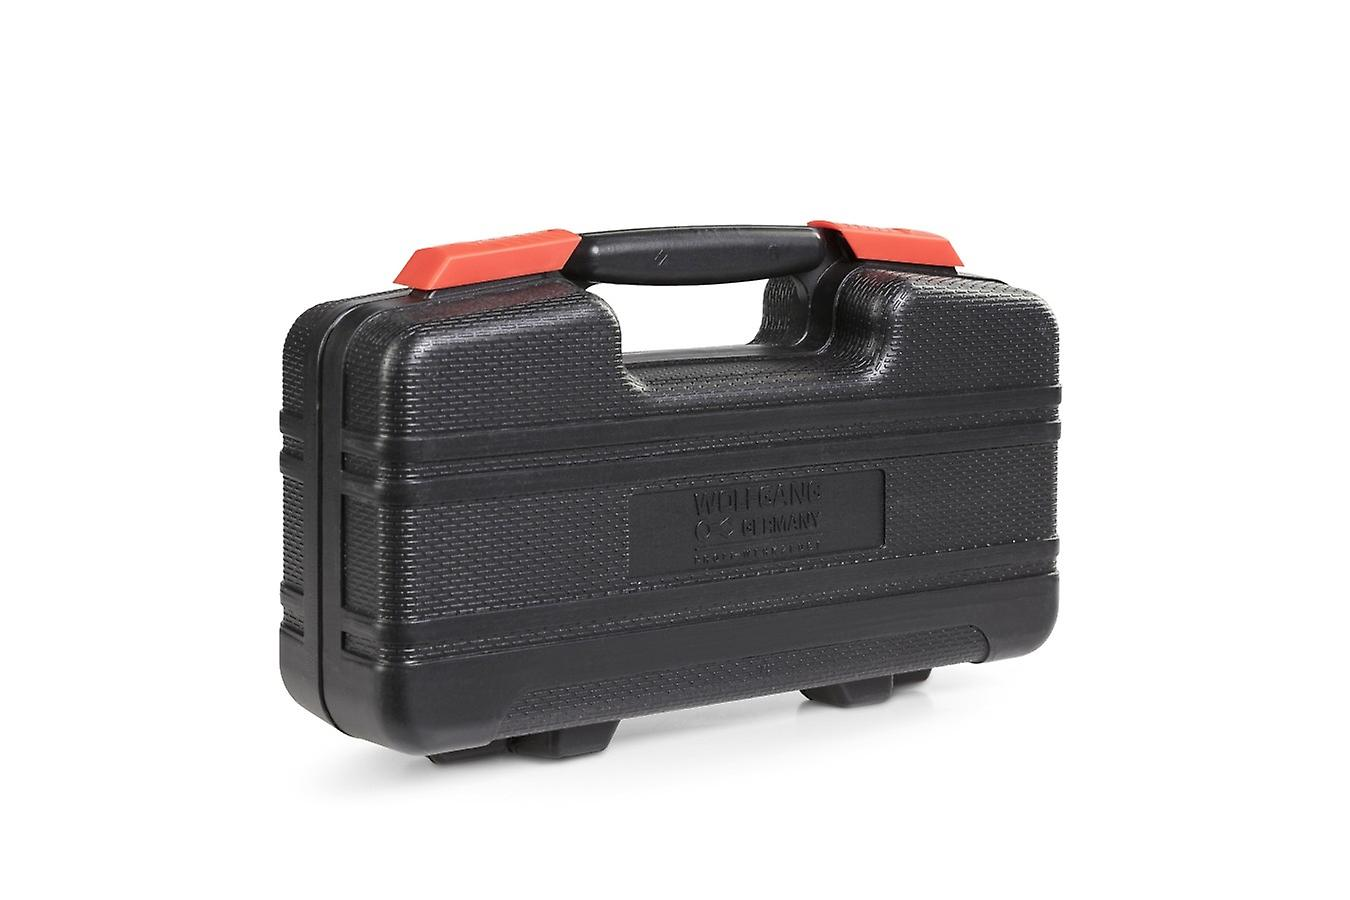 WOLFGANG 73 parts tool case with cordless screwdriver 3.6 V and bit set, hammer, pliers, water balance etc., toolbox as basic equipment for household, car, workshop